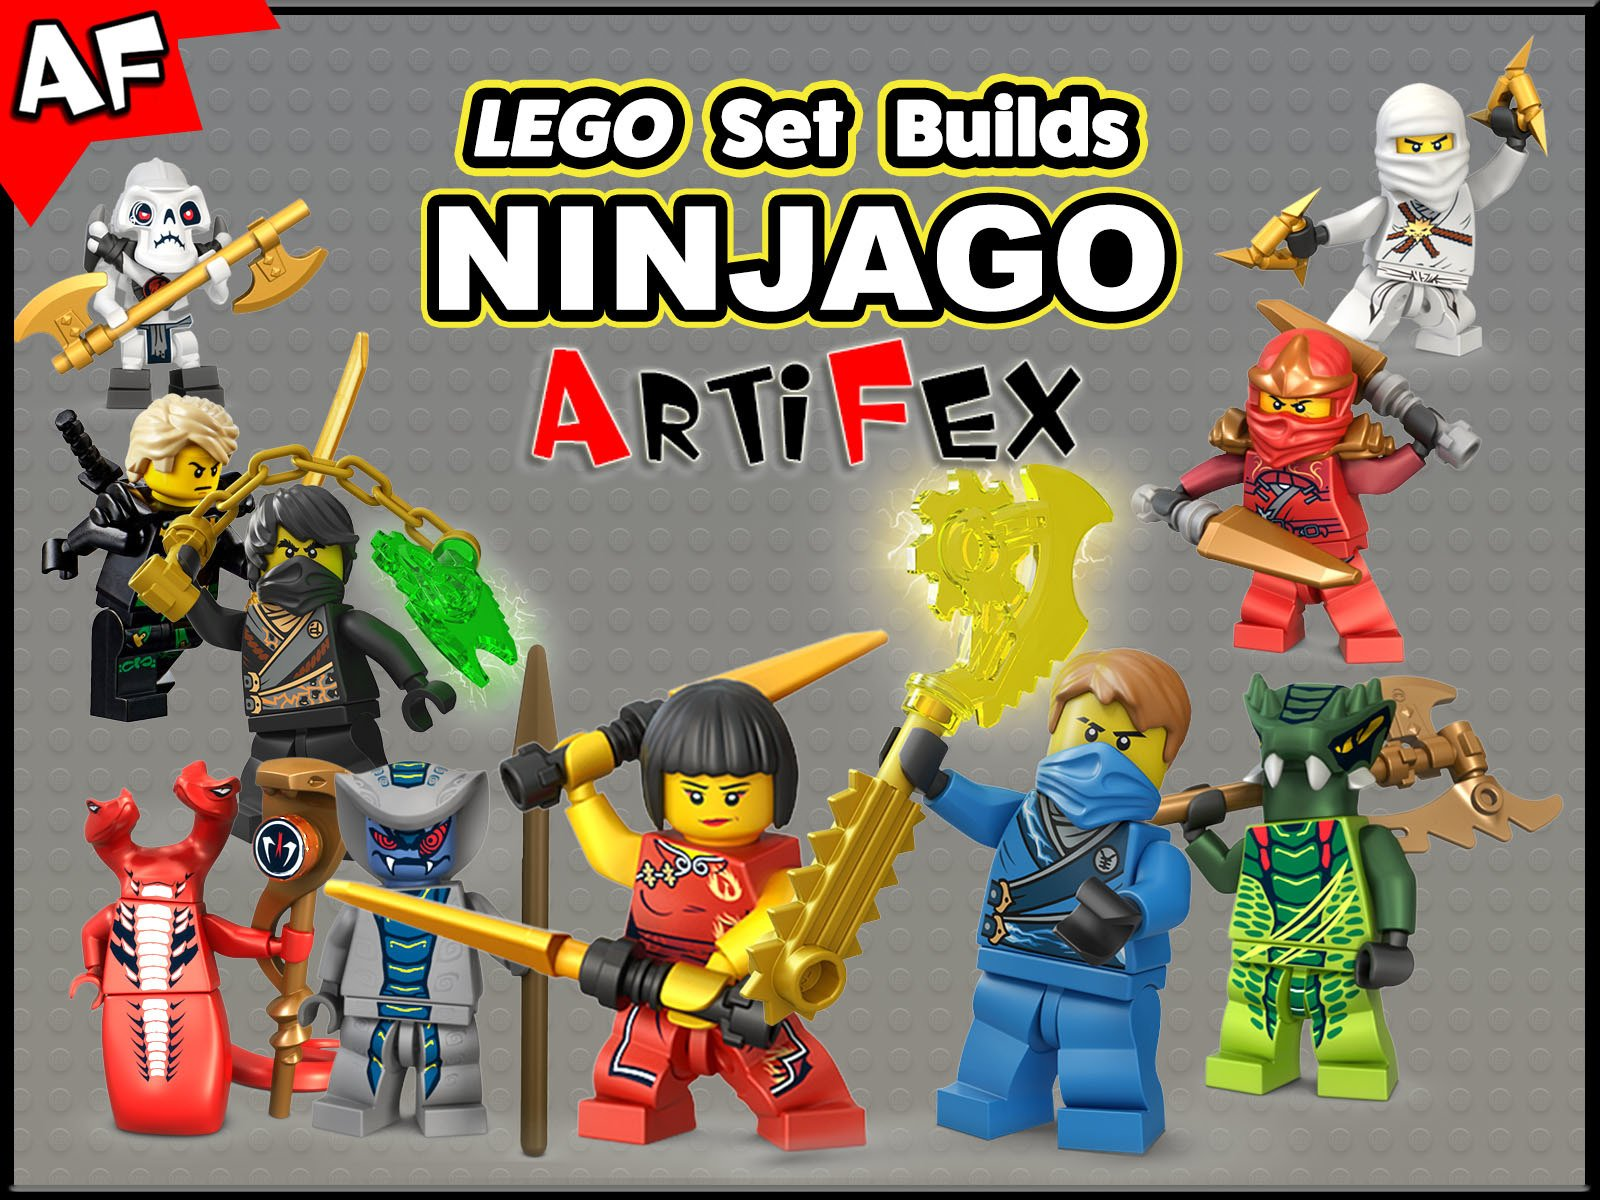 Clip: Lego Set Builds Ninjago - Season 5